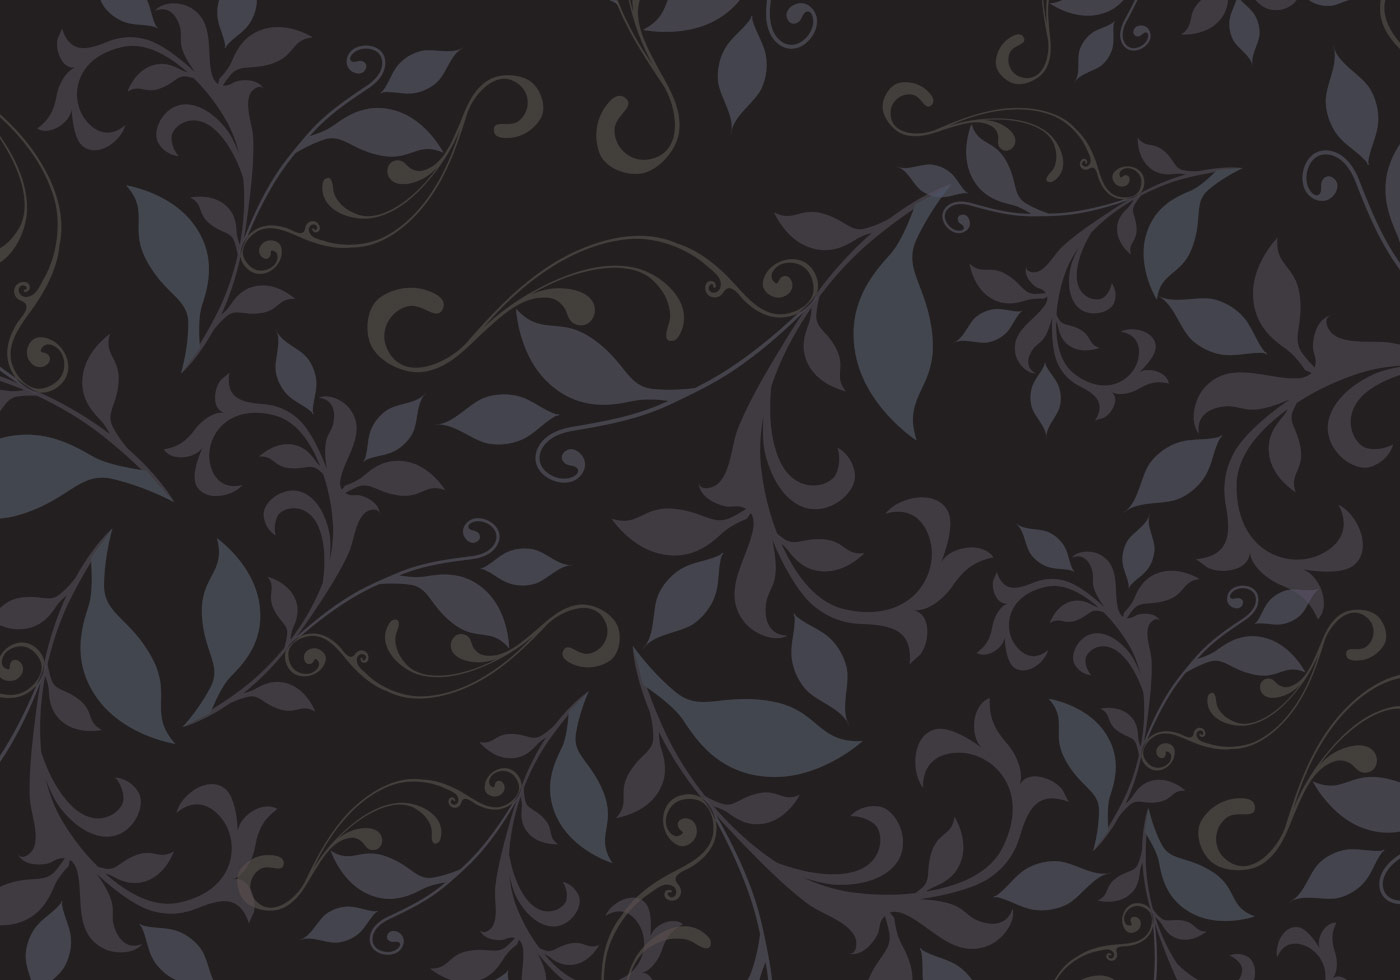 dark floral pattern background vector download free